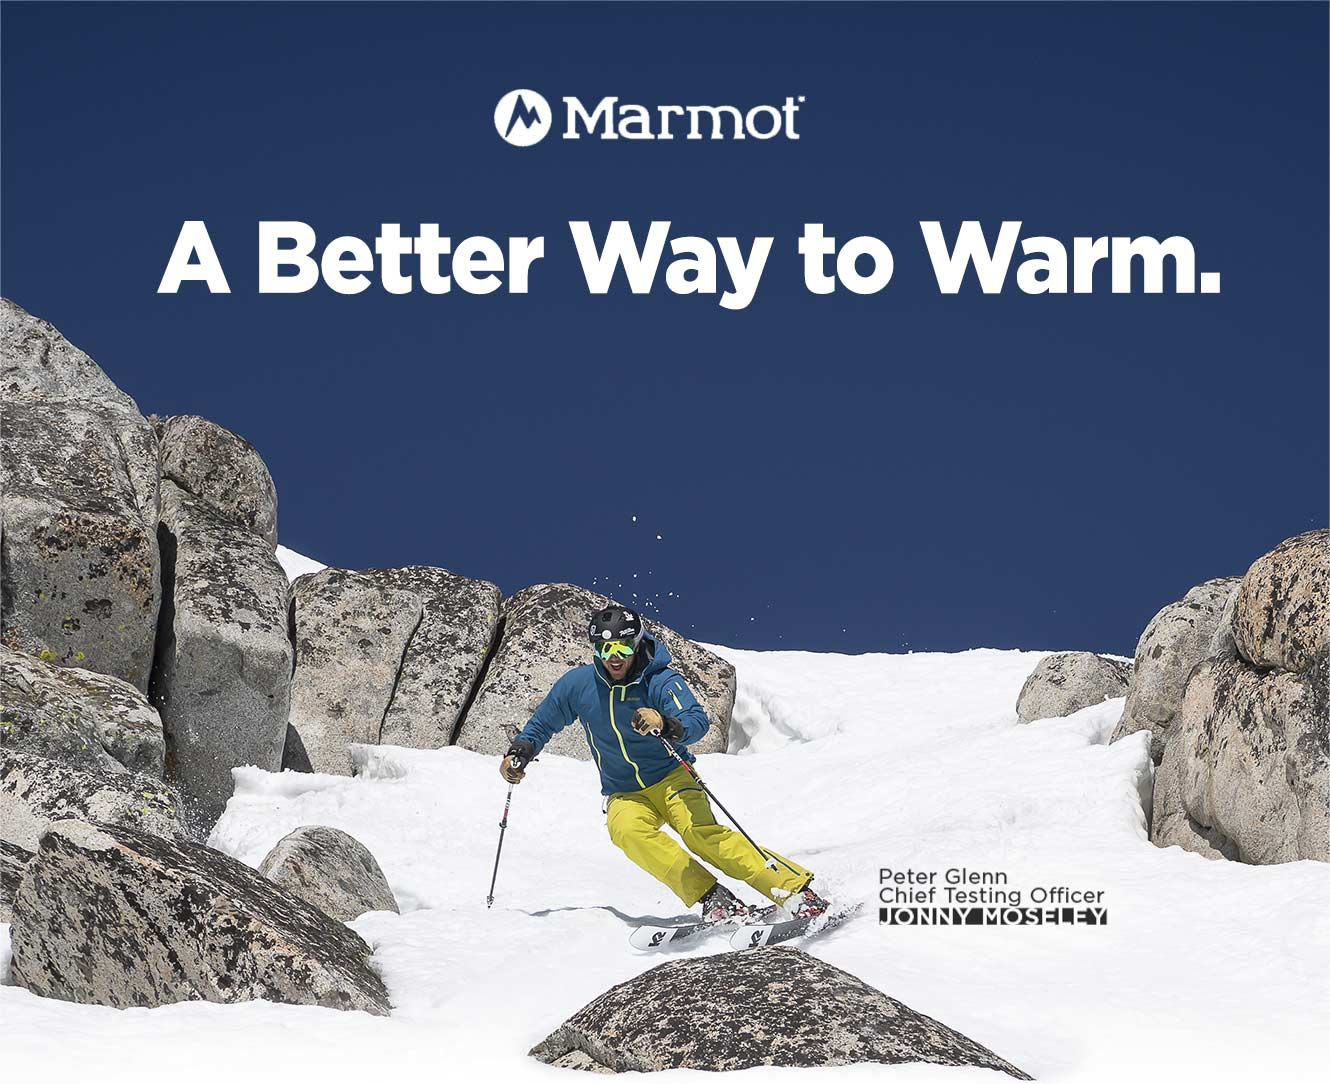 Marmot: A Better Way to Warm.